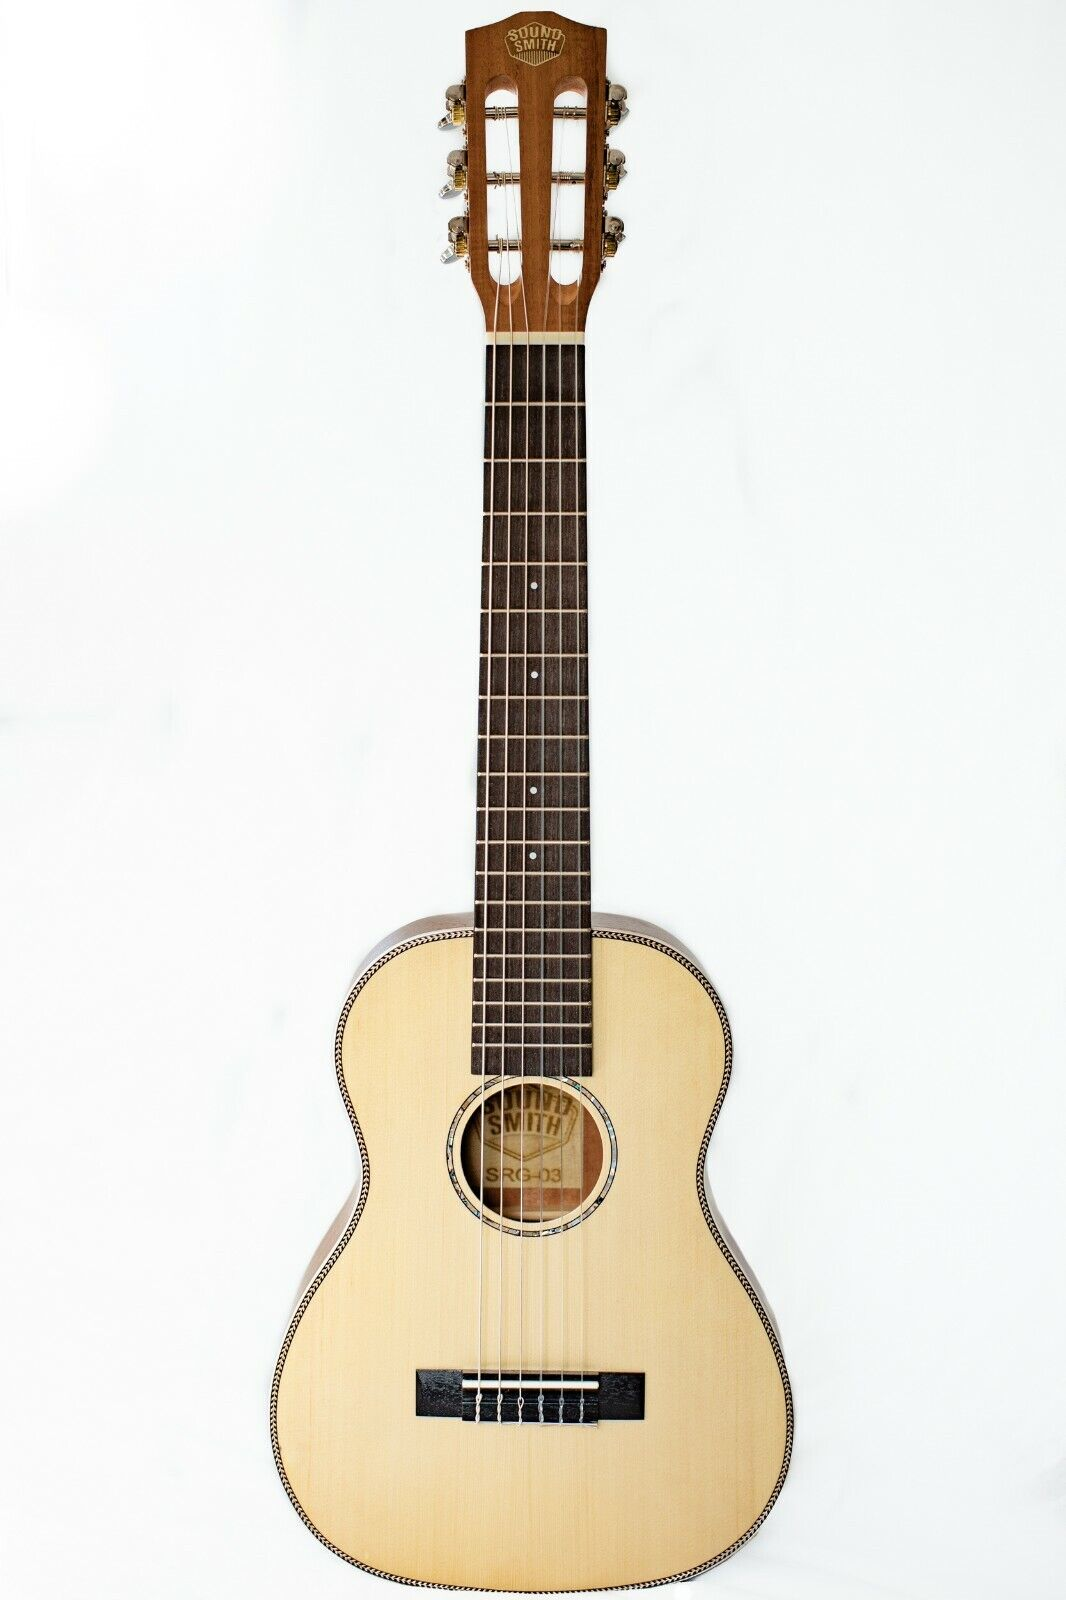 Sound Smith Guitalele (Baritone) - SSG-03 31-inch